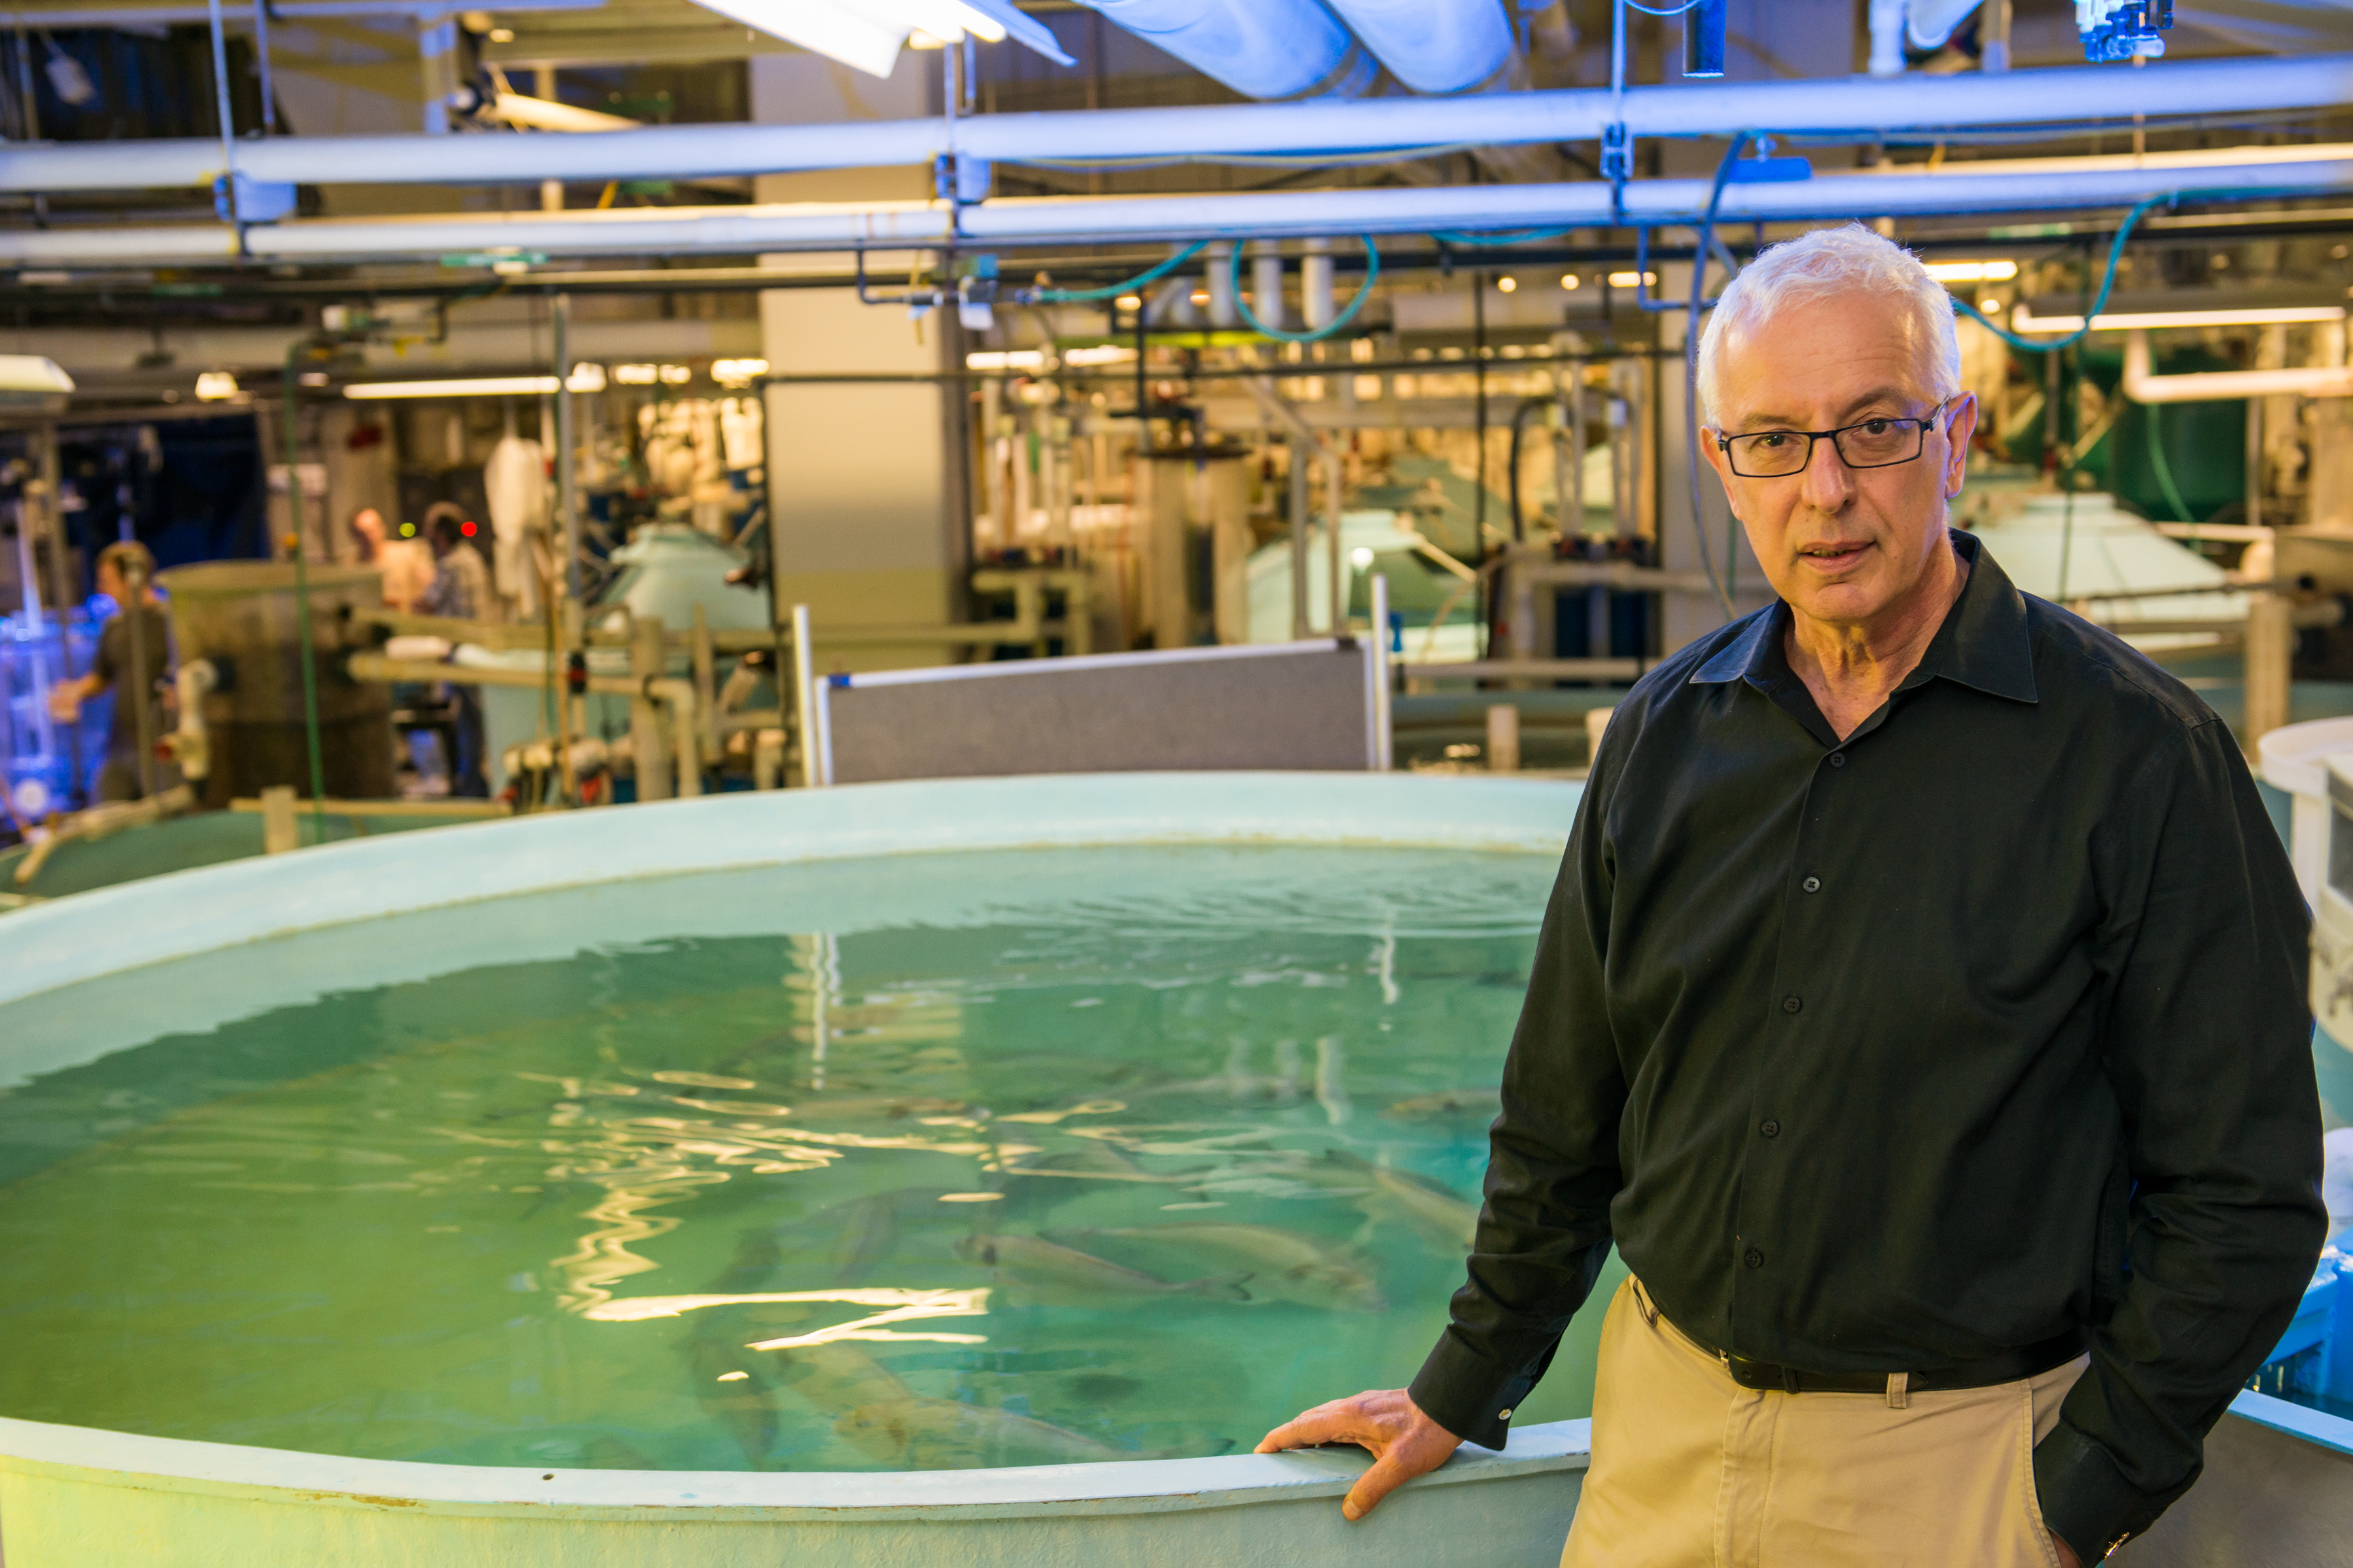 Dr. Zohar stands with his hand resting on a large tank of fish